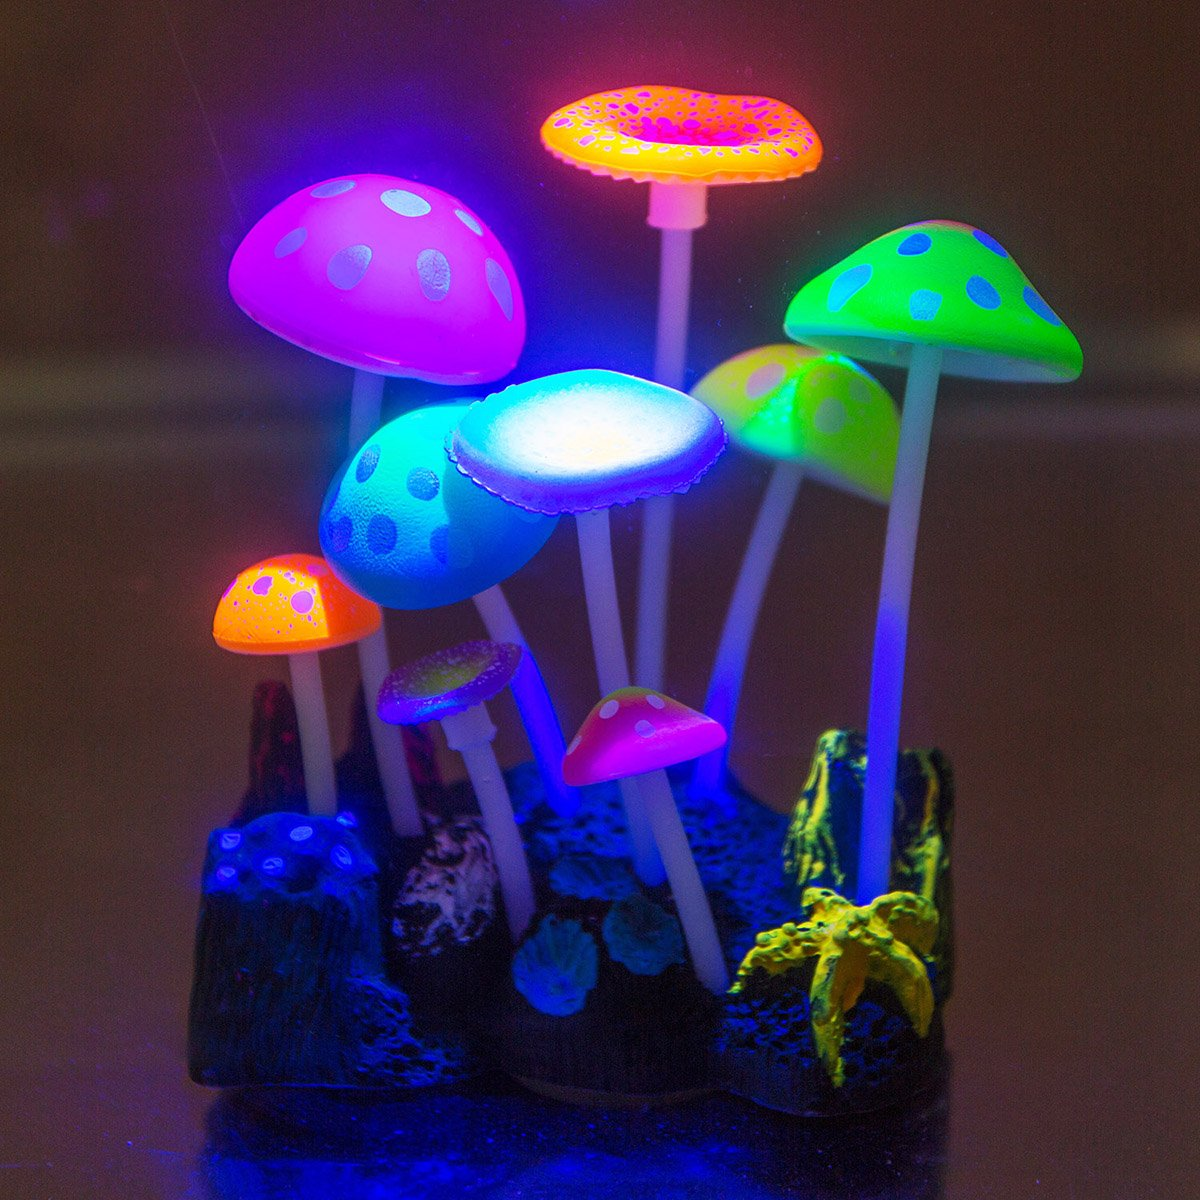 New aquarium ornament luminous glowing mushrooms fish tank for Aquarium decoration ornaments